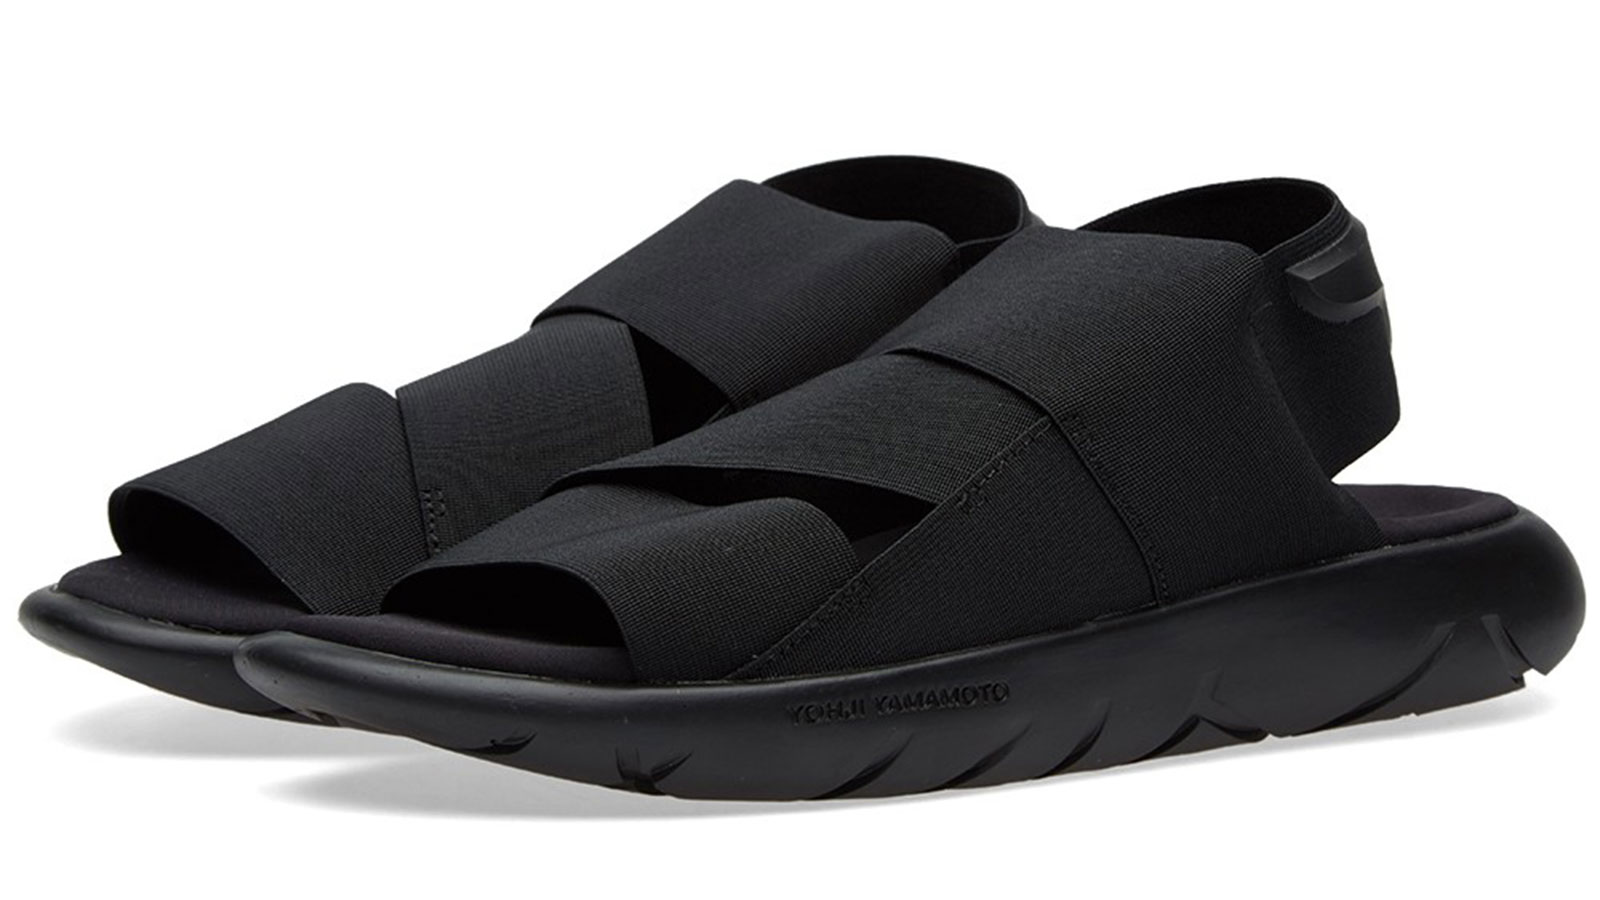 Y-3 QASA SANDAL | The Best Men's Sandals